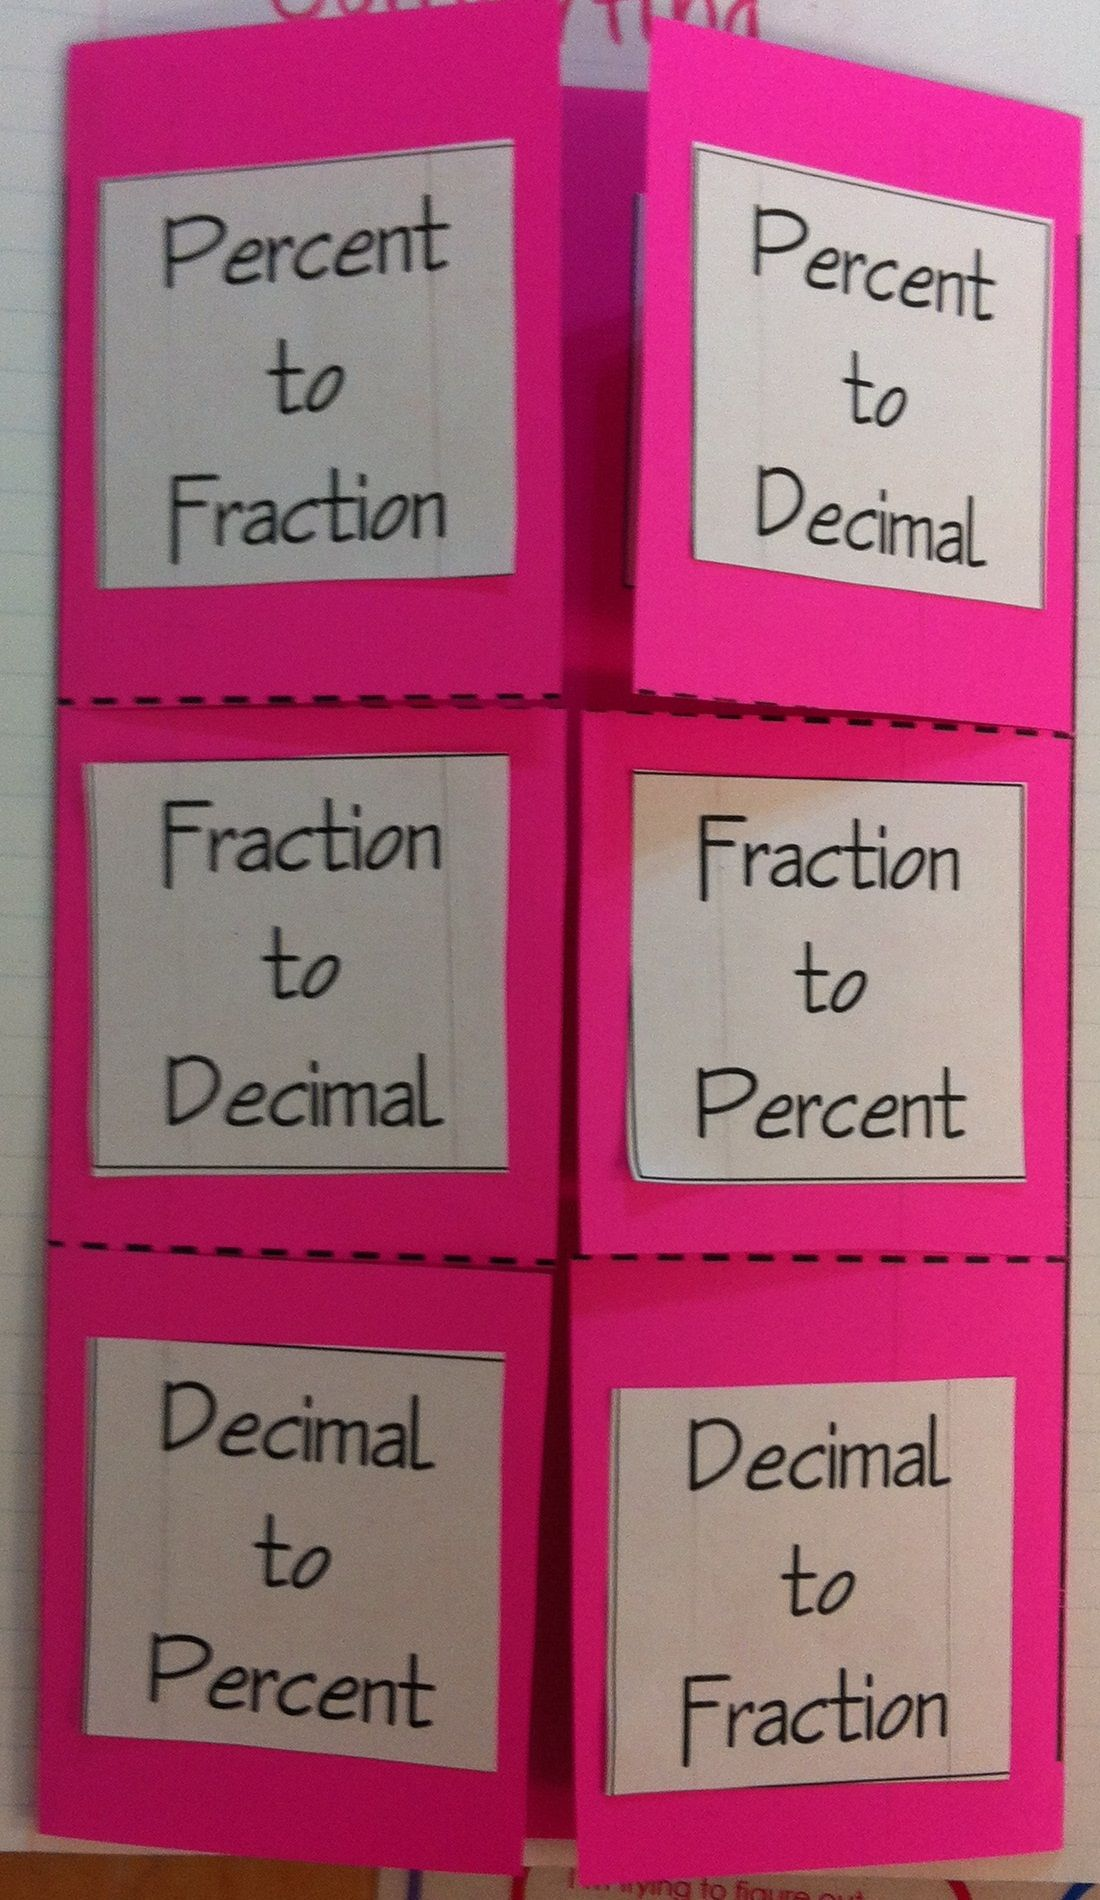 worksheet Change Decimal To Percent fractions decimals and percents flippable attach the labels choose correct steps to